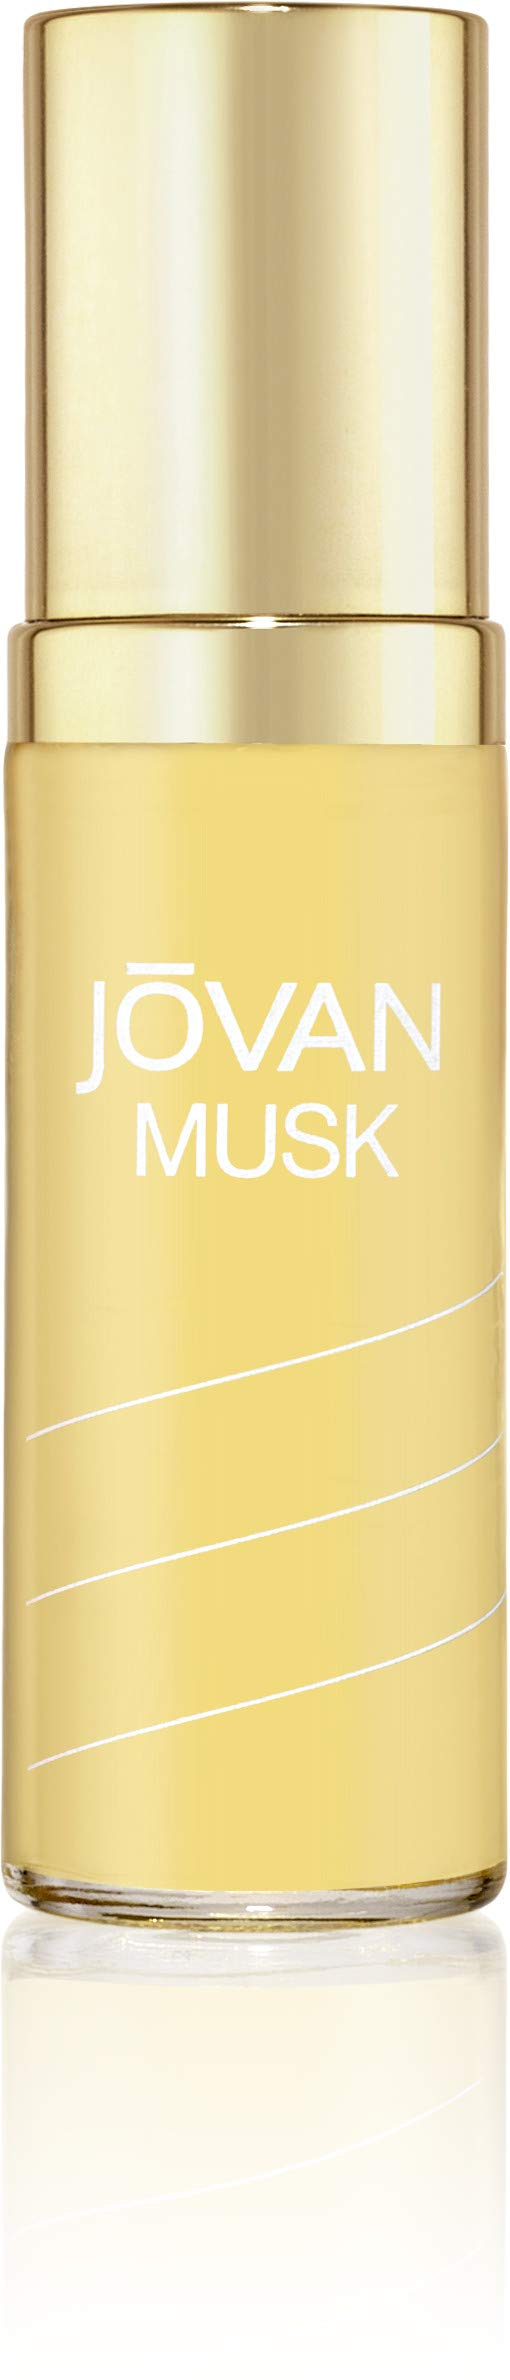 Jovan Musk by Jovan For Women. Cologne Spray 2-Ounces (Packaging May Vary)